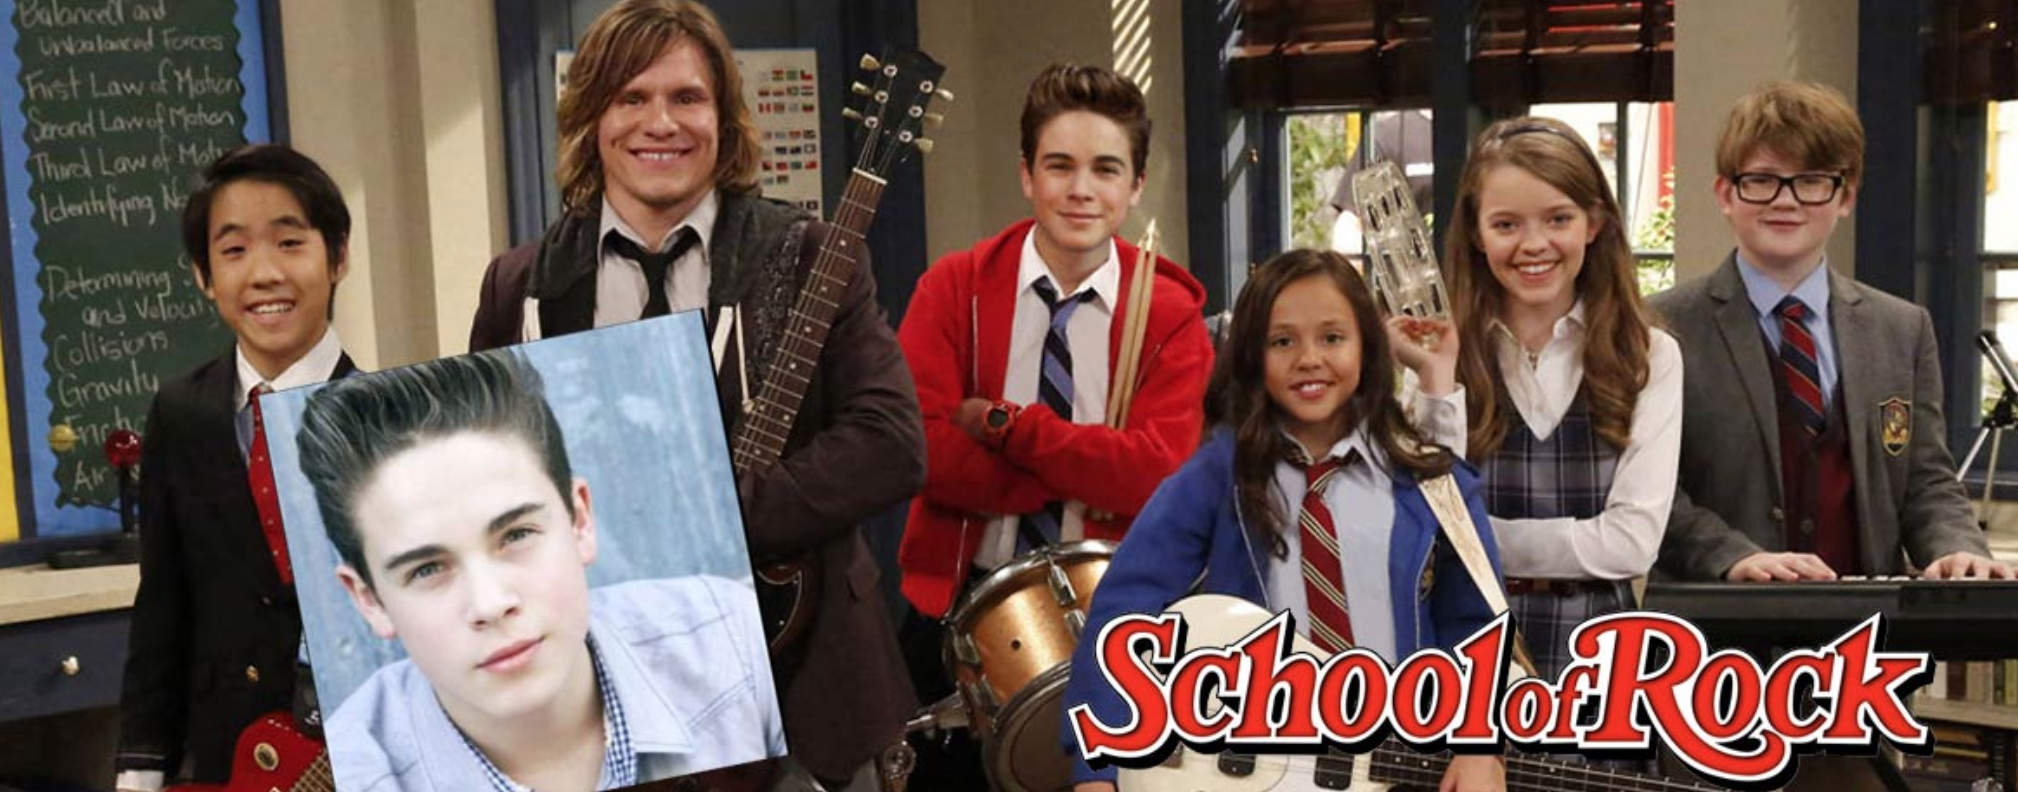 Ricardo Hurtado (now 18) has now been starring on School of Rock for three seasons, in addition to pursuing his music.